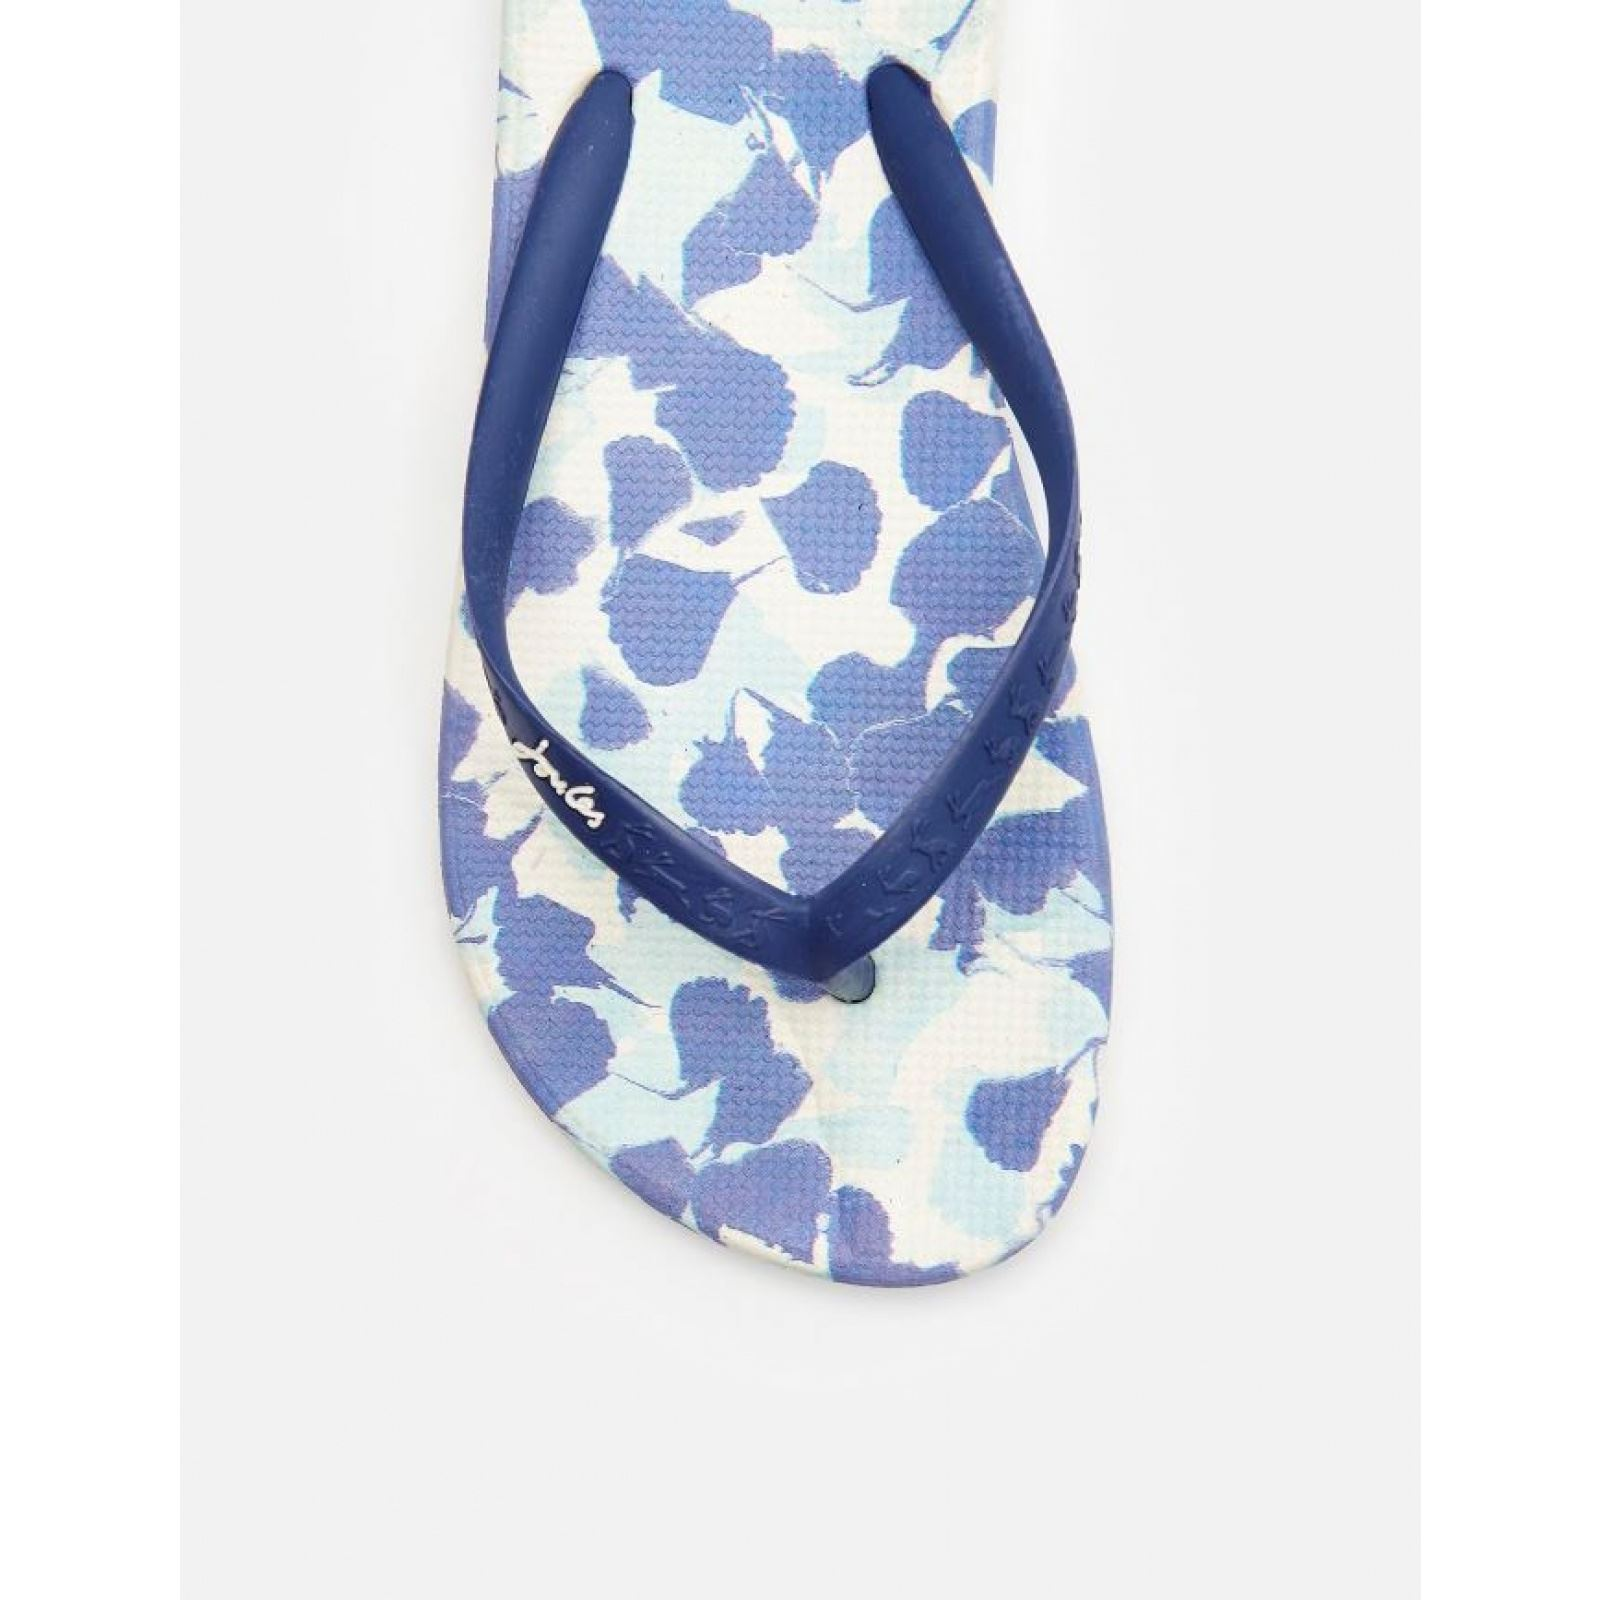 Joules-Flip-Flops-Sandals-Summer-Flip-Flop-NEW-2019-COLOURS thumbnail 6